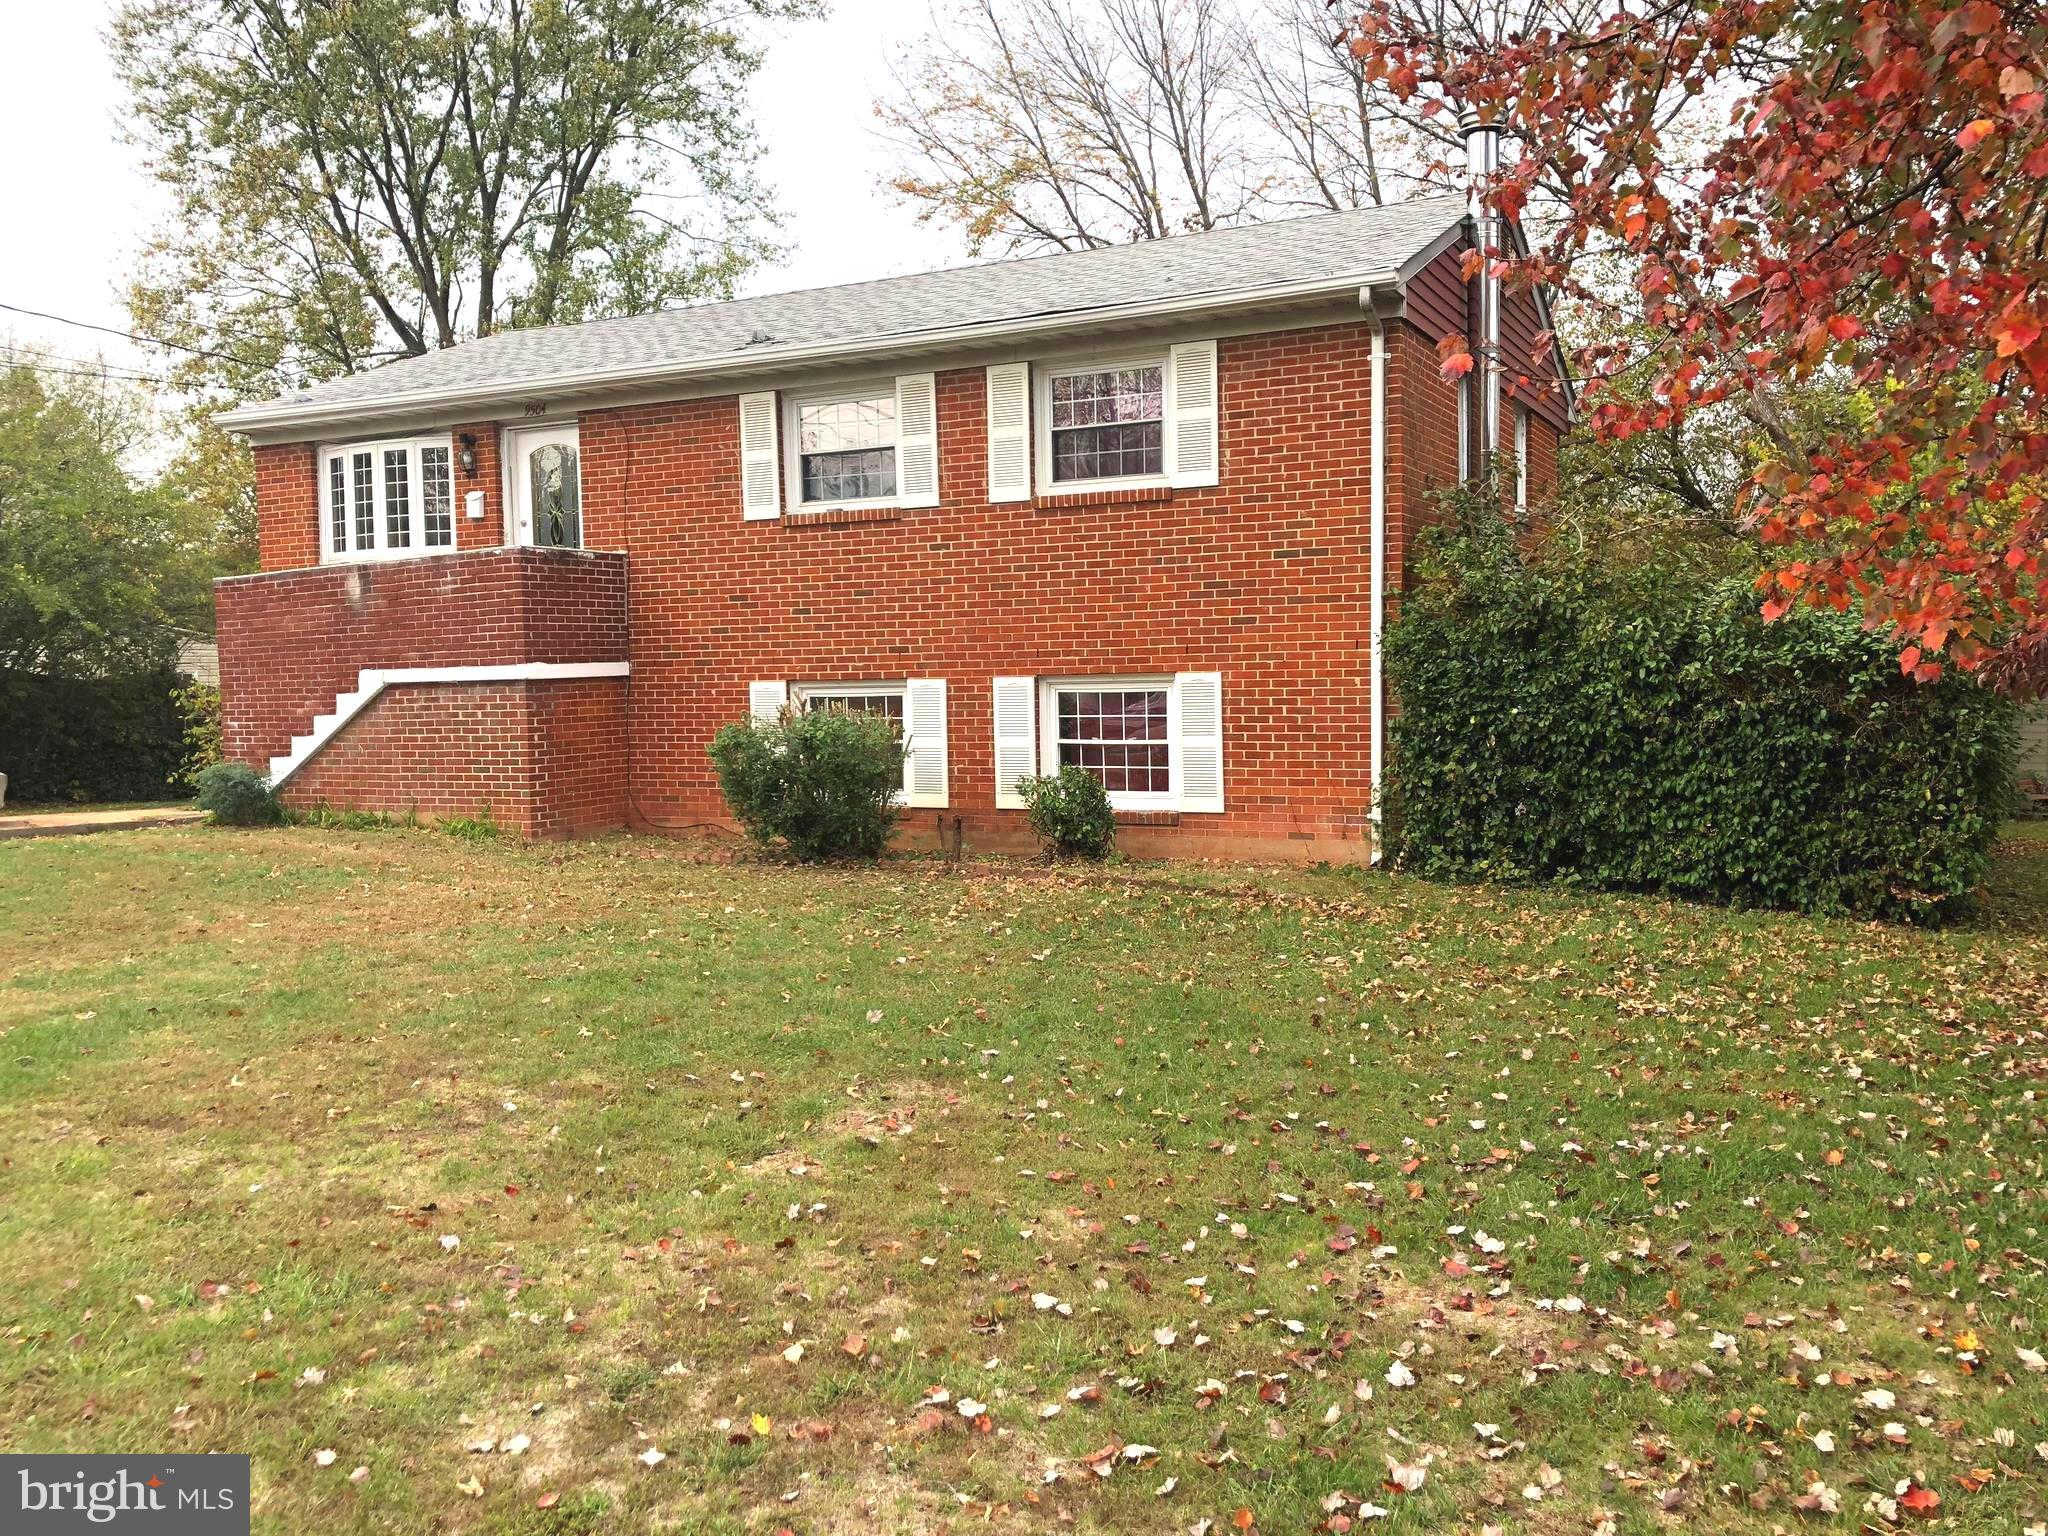 9504 Salem Street, Manassas, VA 20110 is now new to the market!